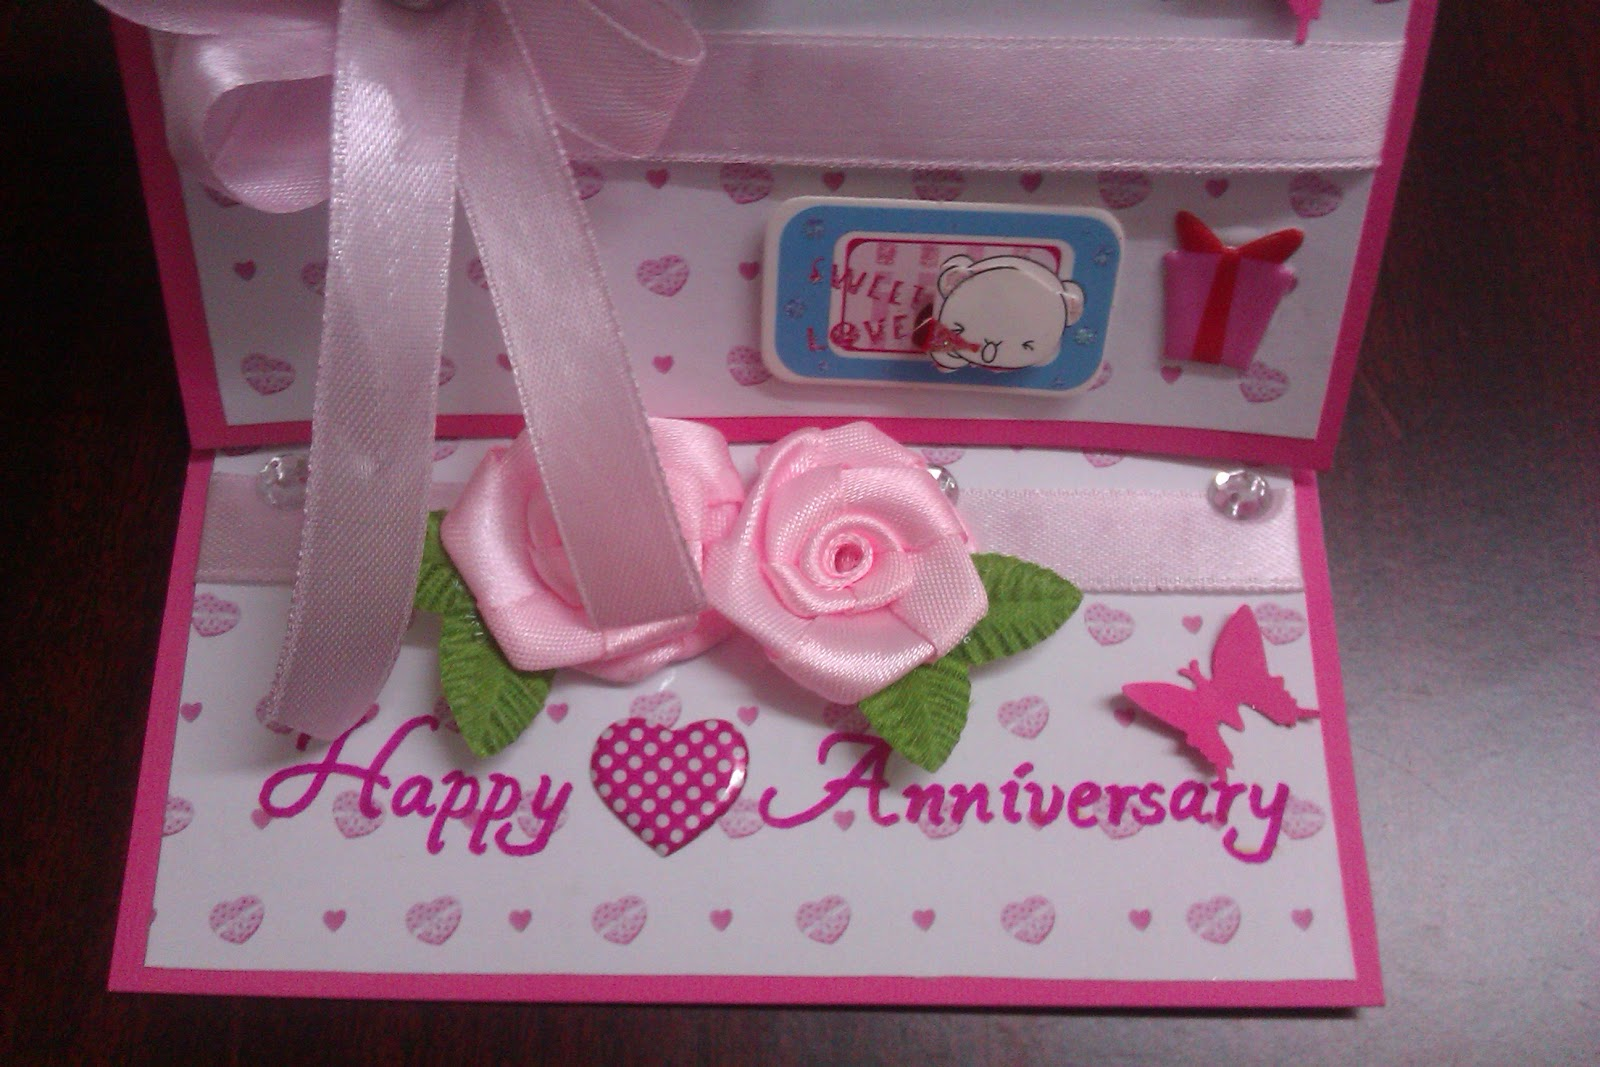 My artbook wedding anniversary easel card